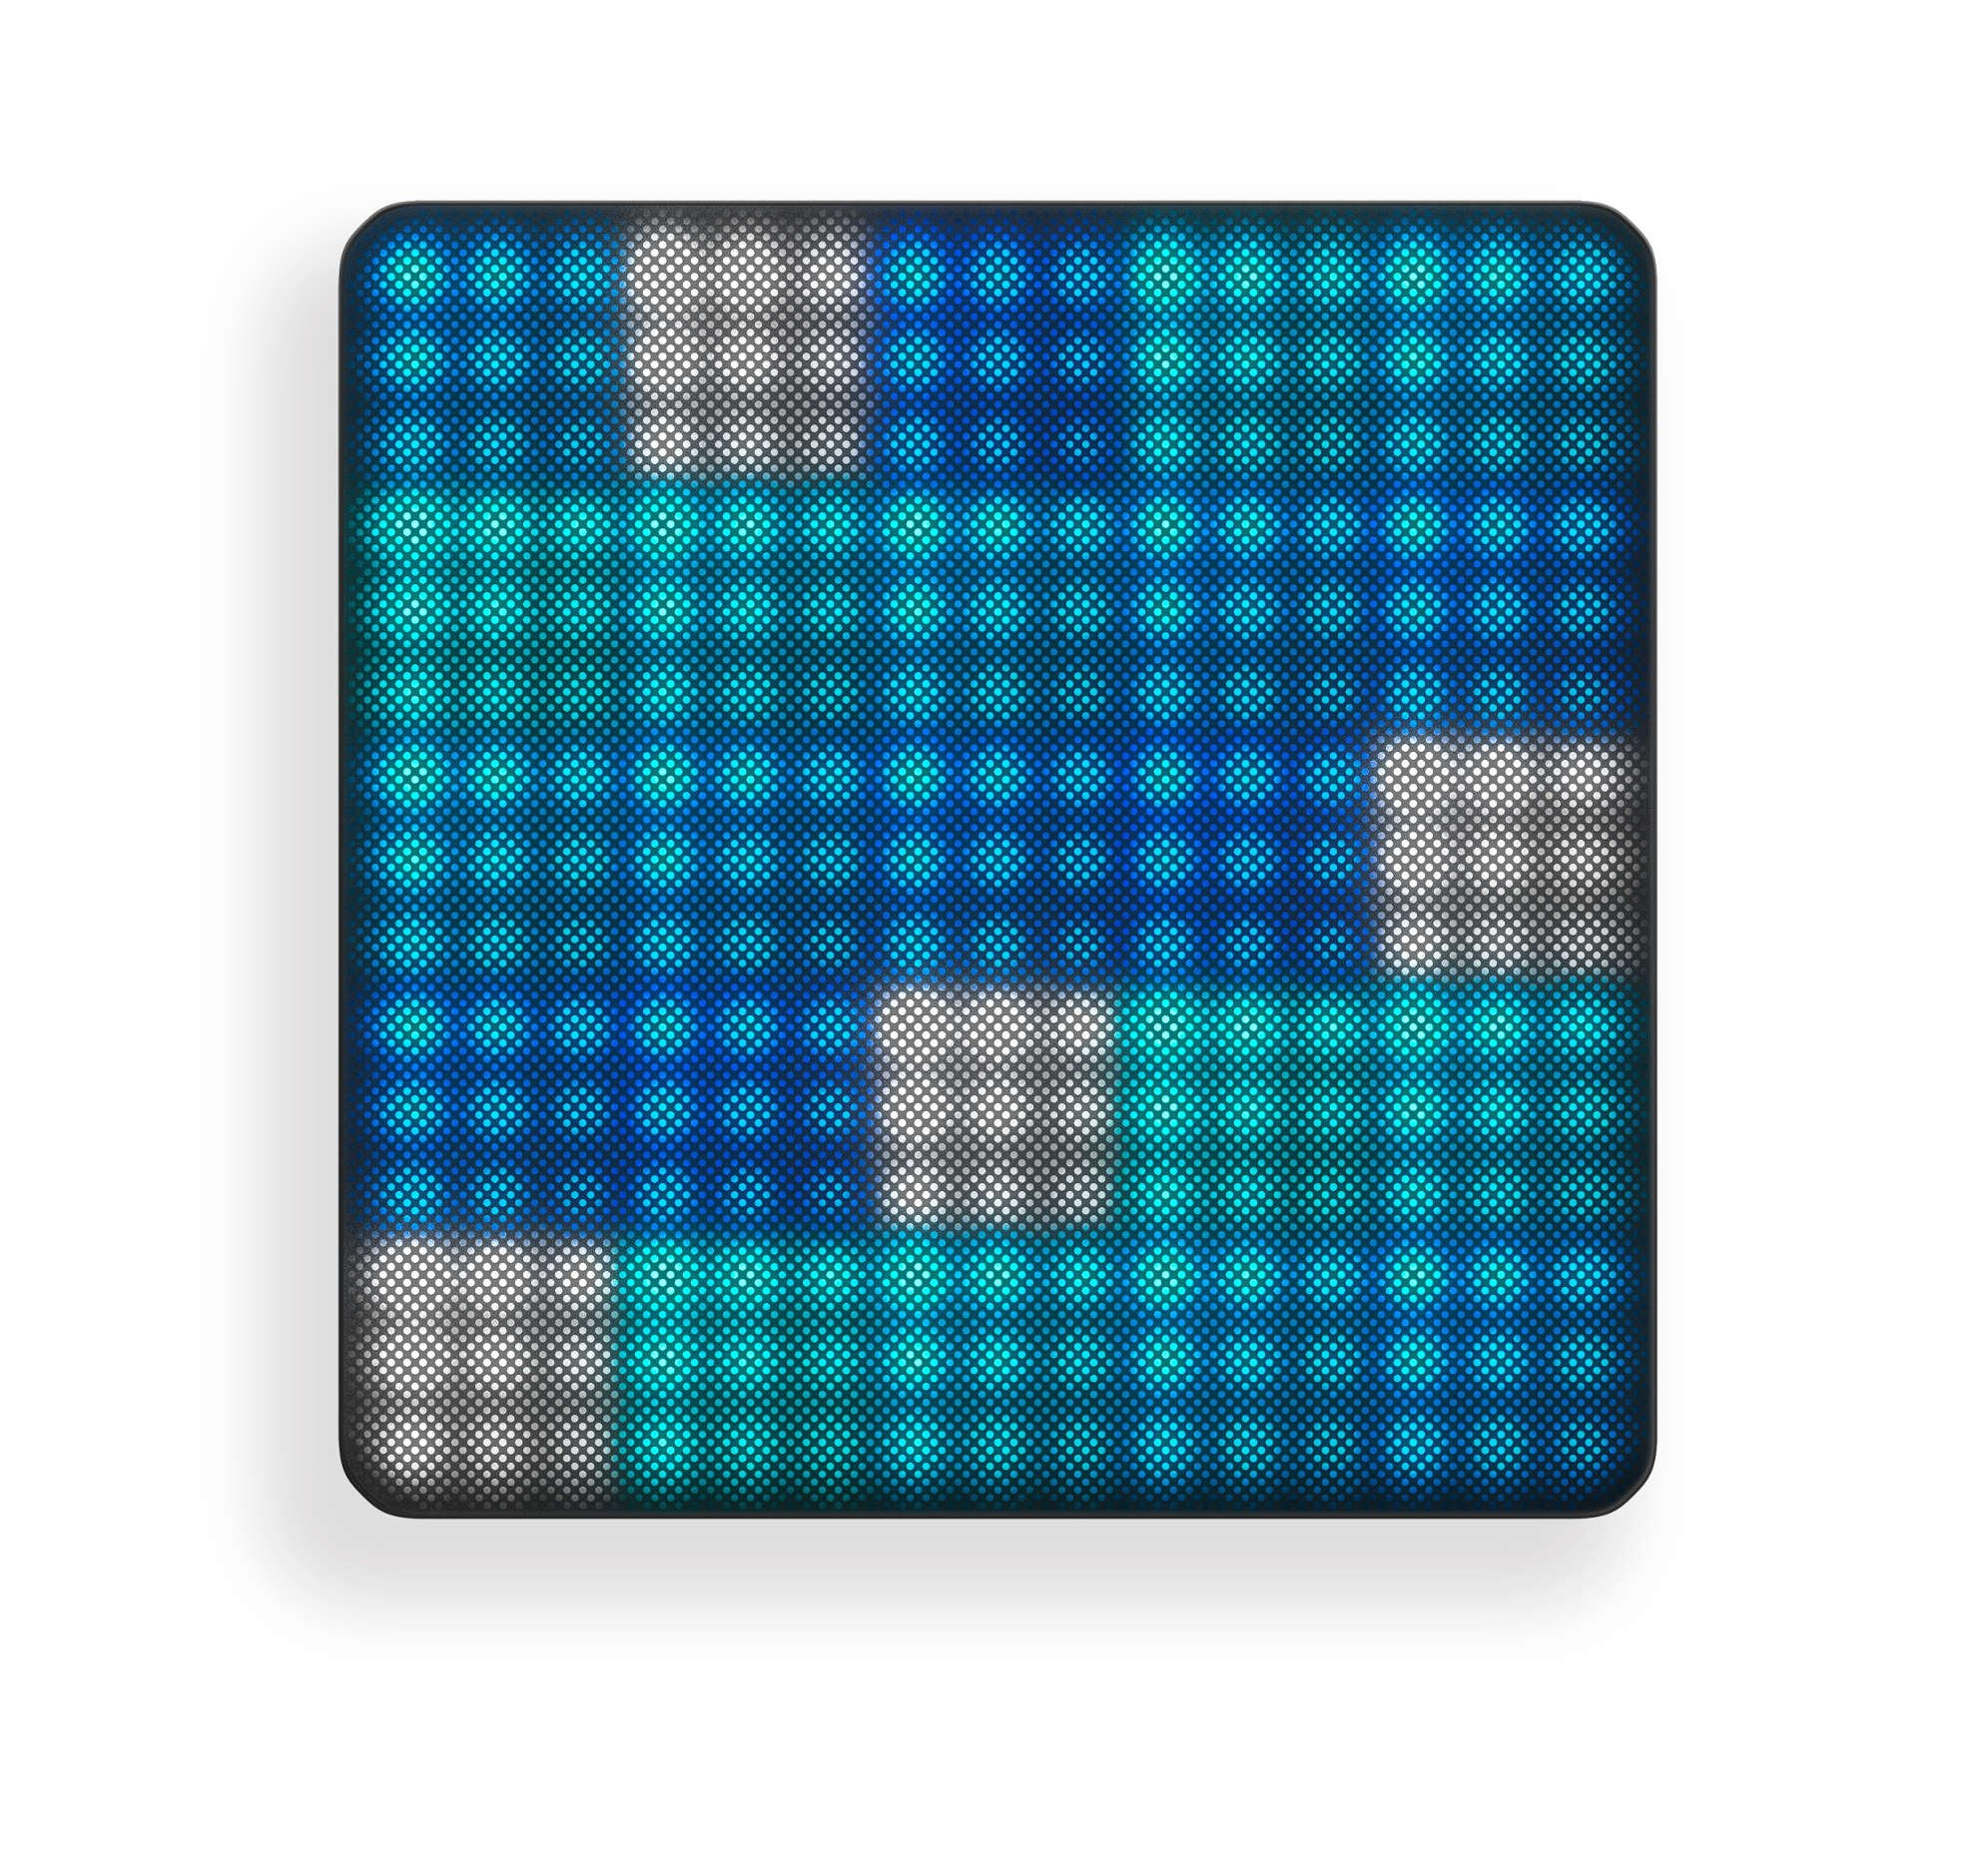 5D MIDI Controller with15 x 15 LED Matrix with Bluetooth Connectivity